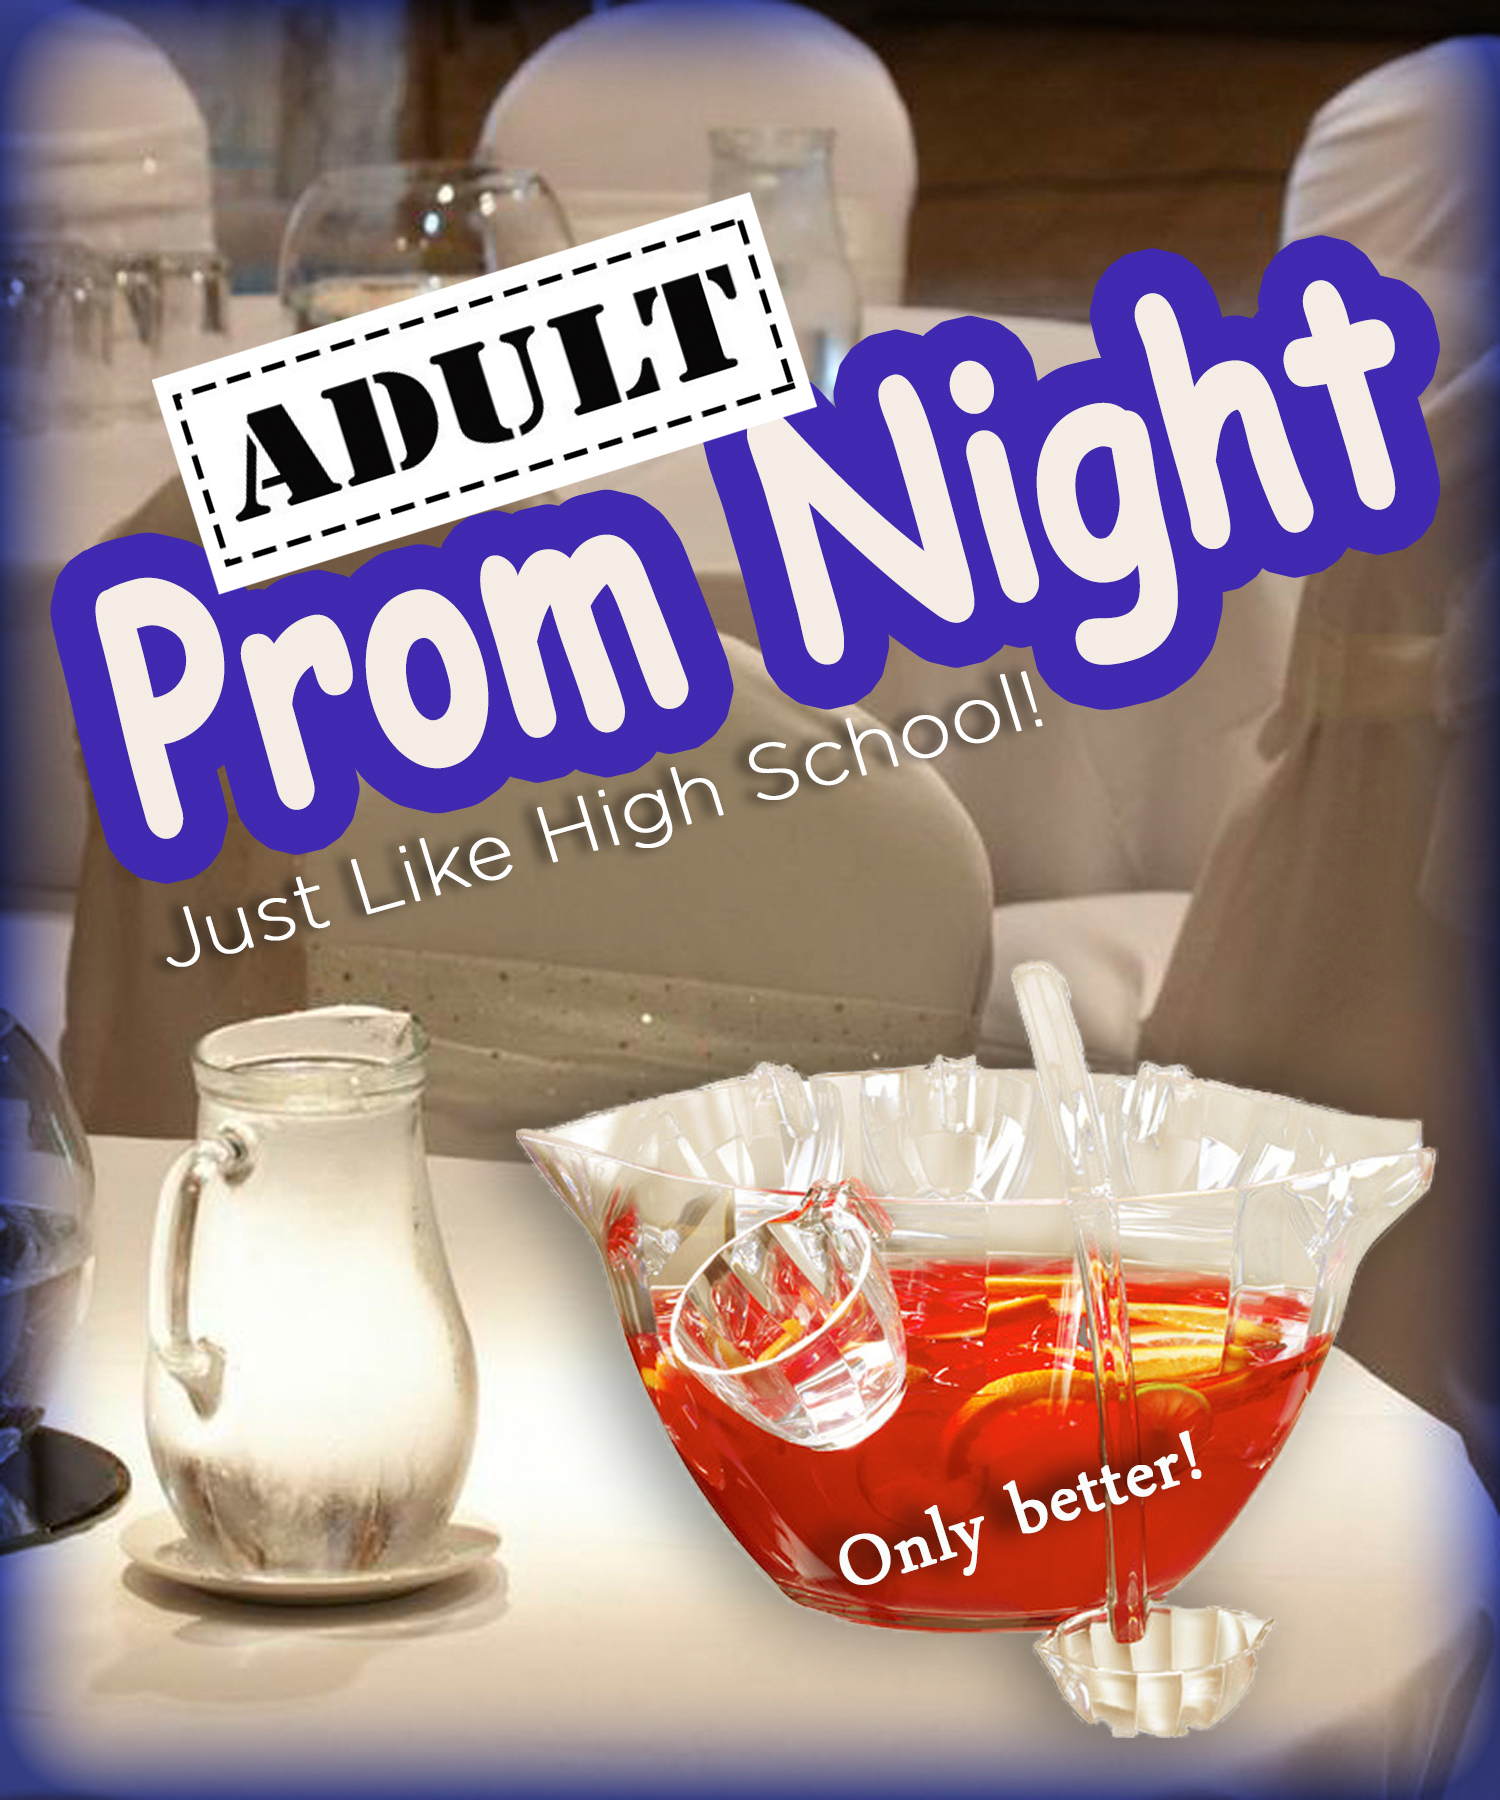 Adult Prom Night - Just Like High School - Only Better!